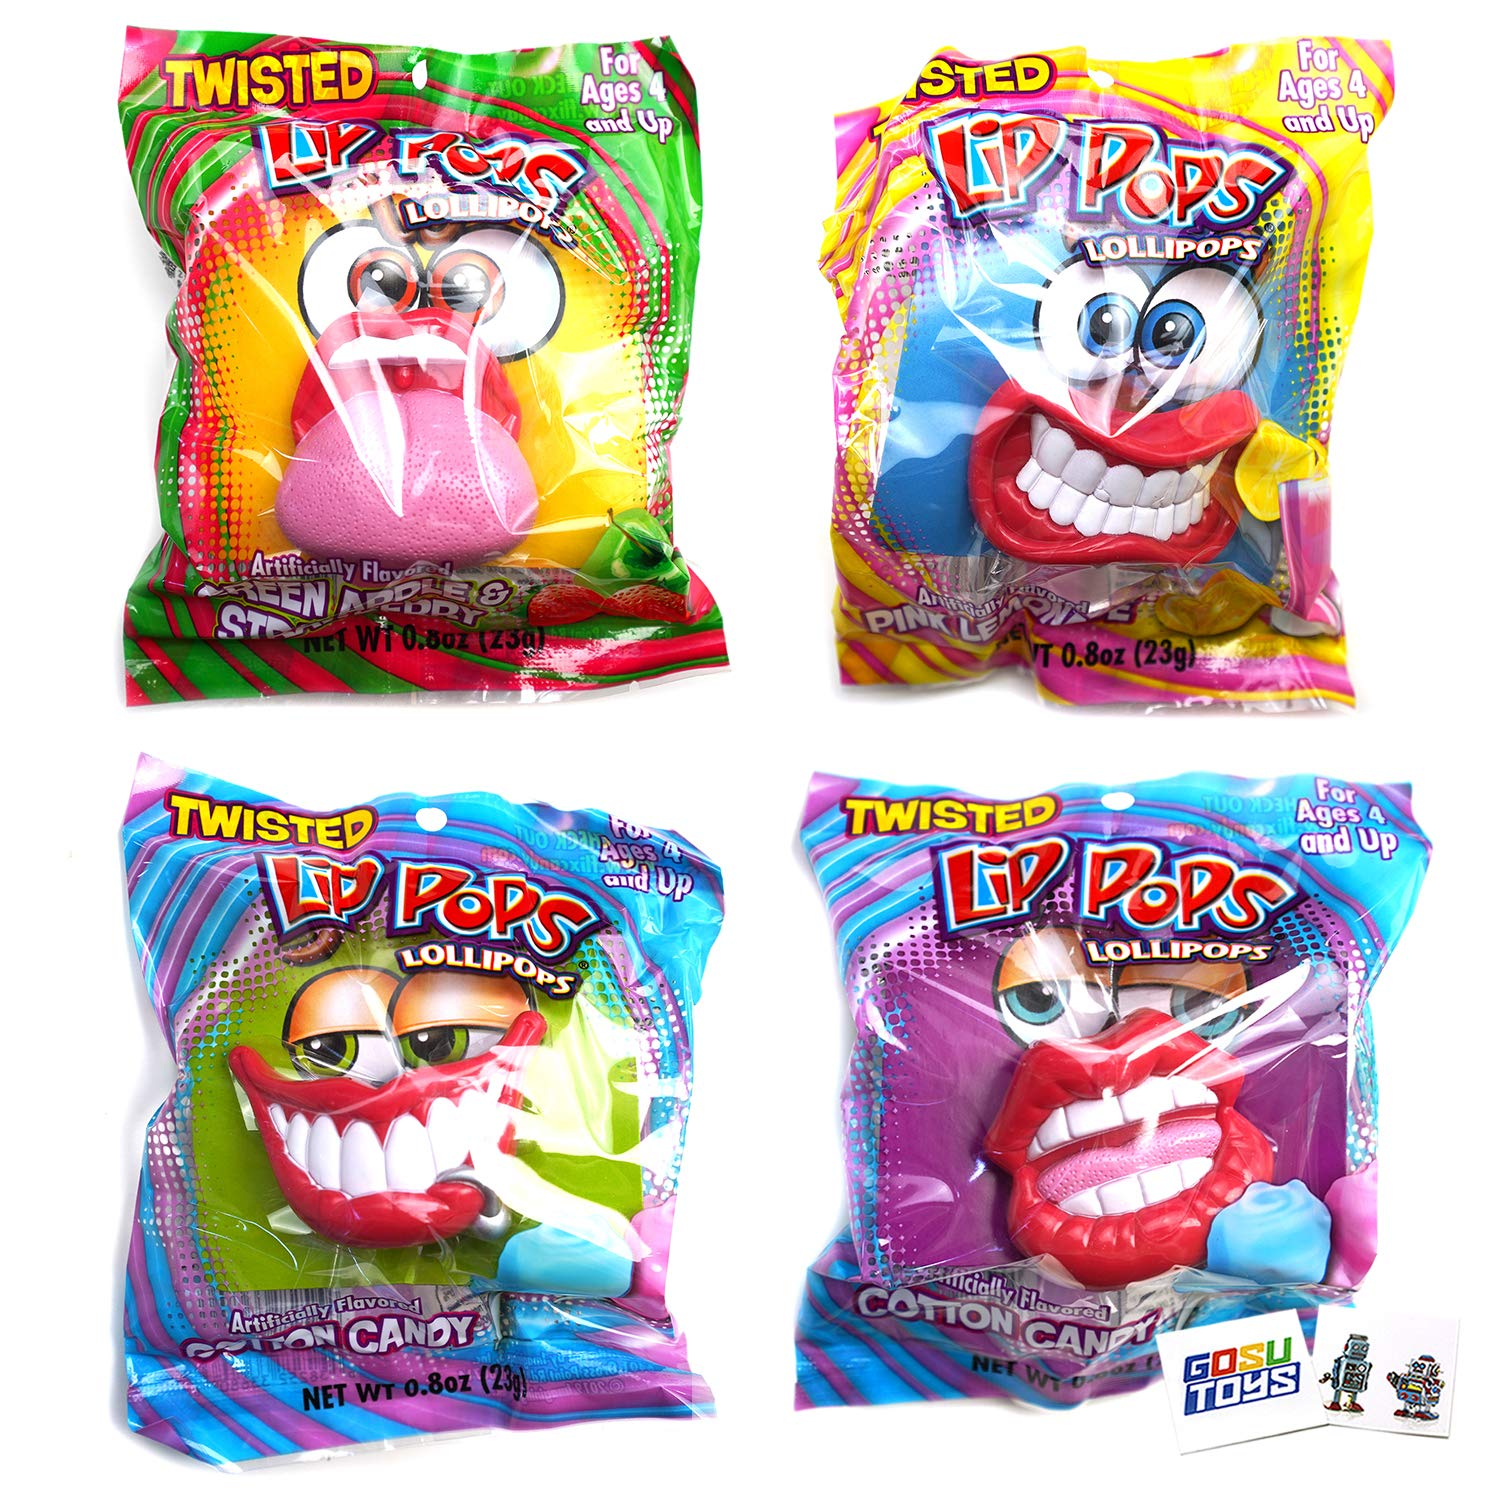 Max 59% OFF Twisted Lip Pops Lollipops 4 discount Different Pack Lips Assorted F